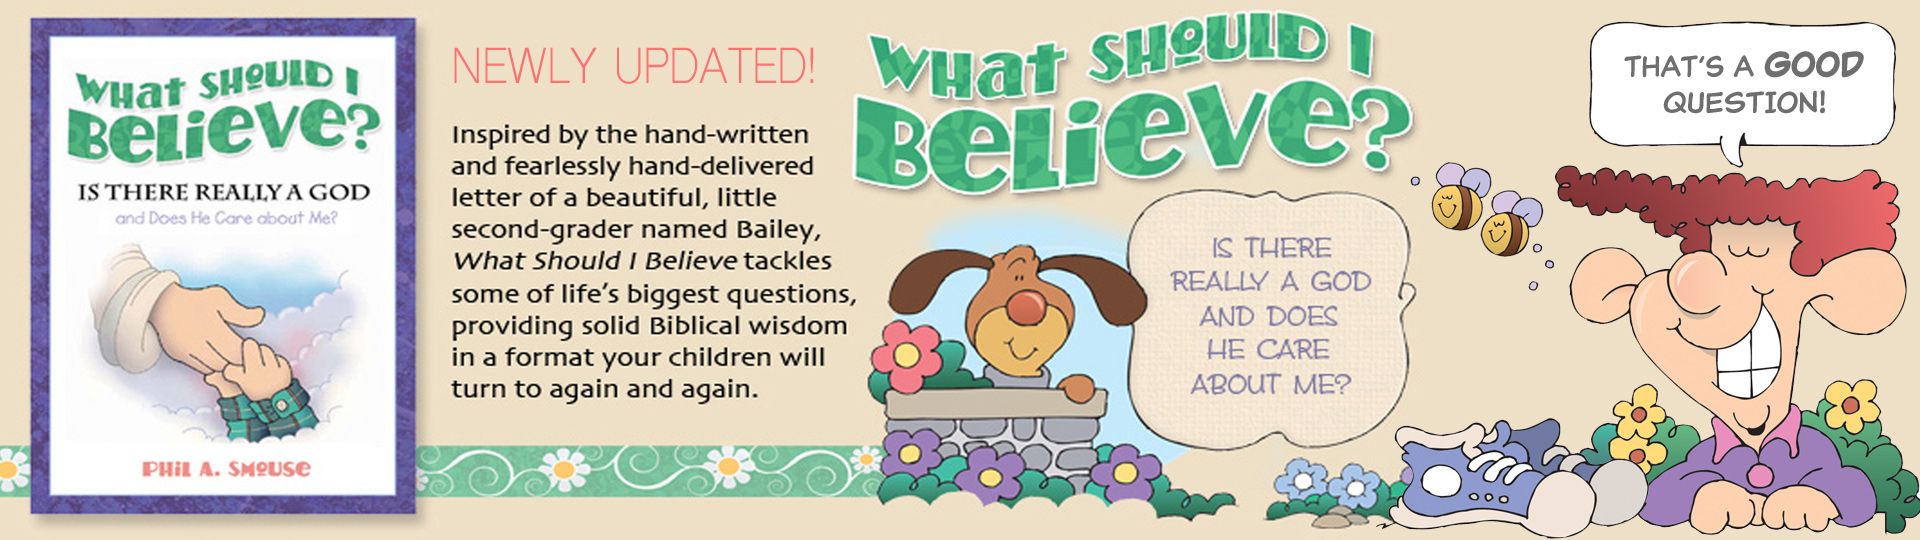 What Should I Believe? - Phil A. Smouse